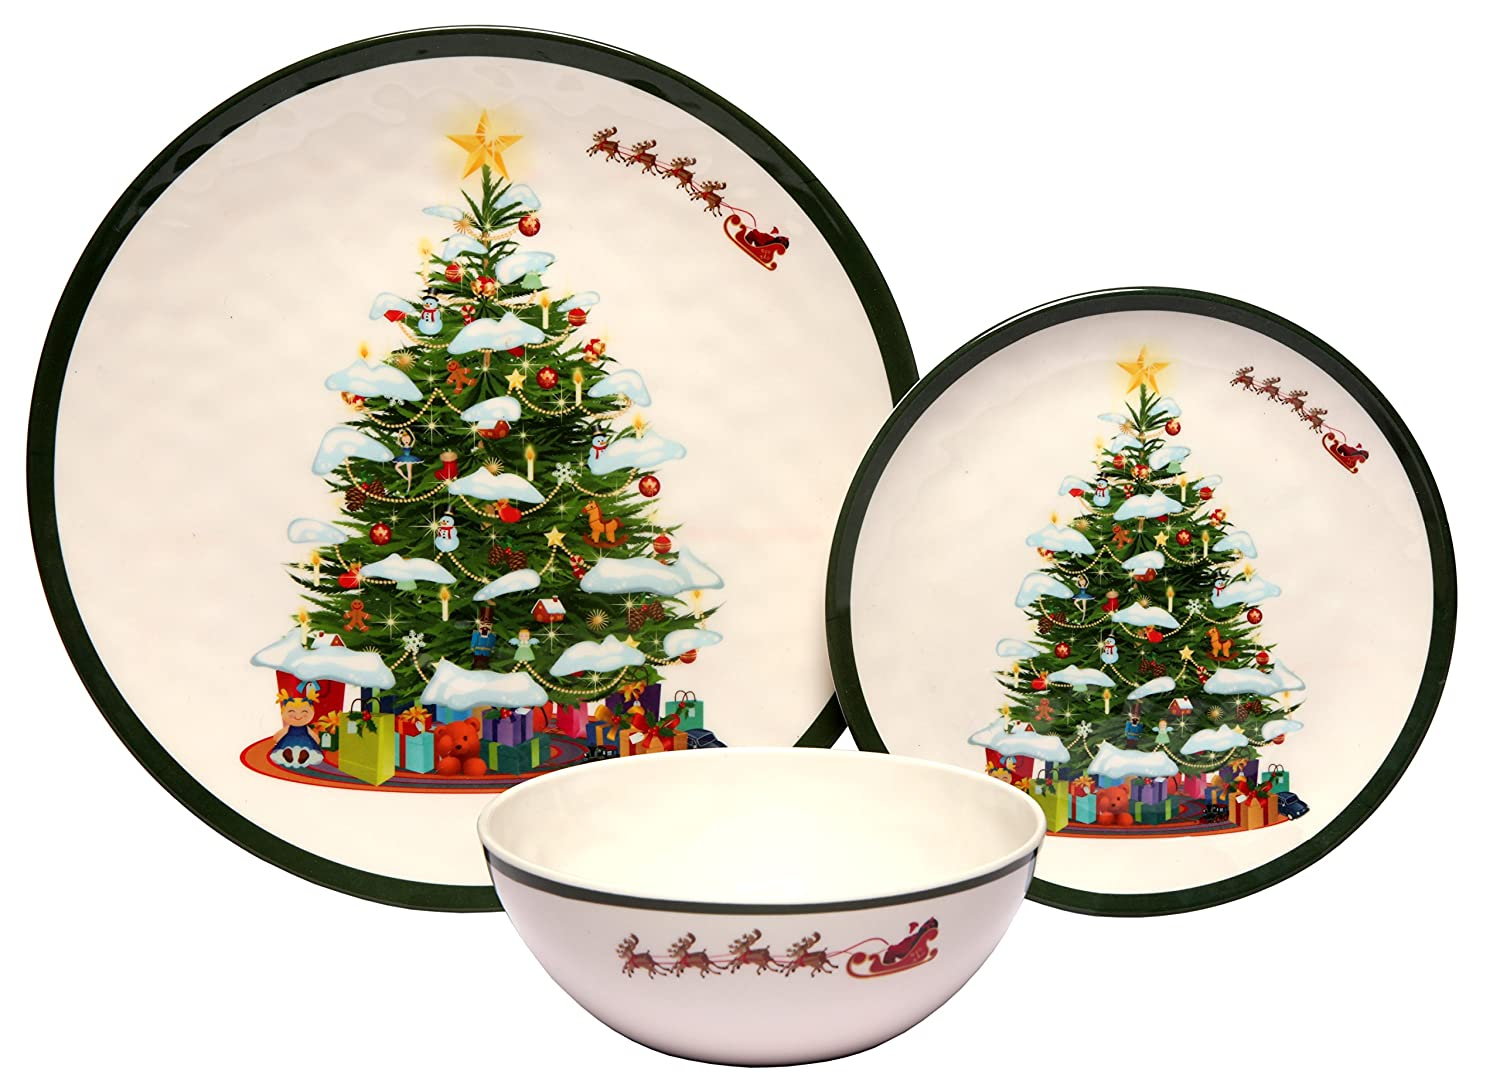 Melange 12-Piece 100% Melamine Dinnerware Set (Christmas Tree Collection ) | Shatter-Proof and Chip-Resistant Melamine Plates and Bowls | Dinner Plate, Salad Plate & Soup Bowl (4 Each) Ruby Compass Melamine 612409792952